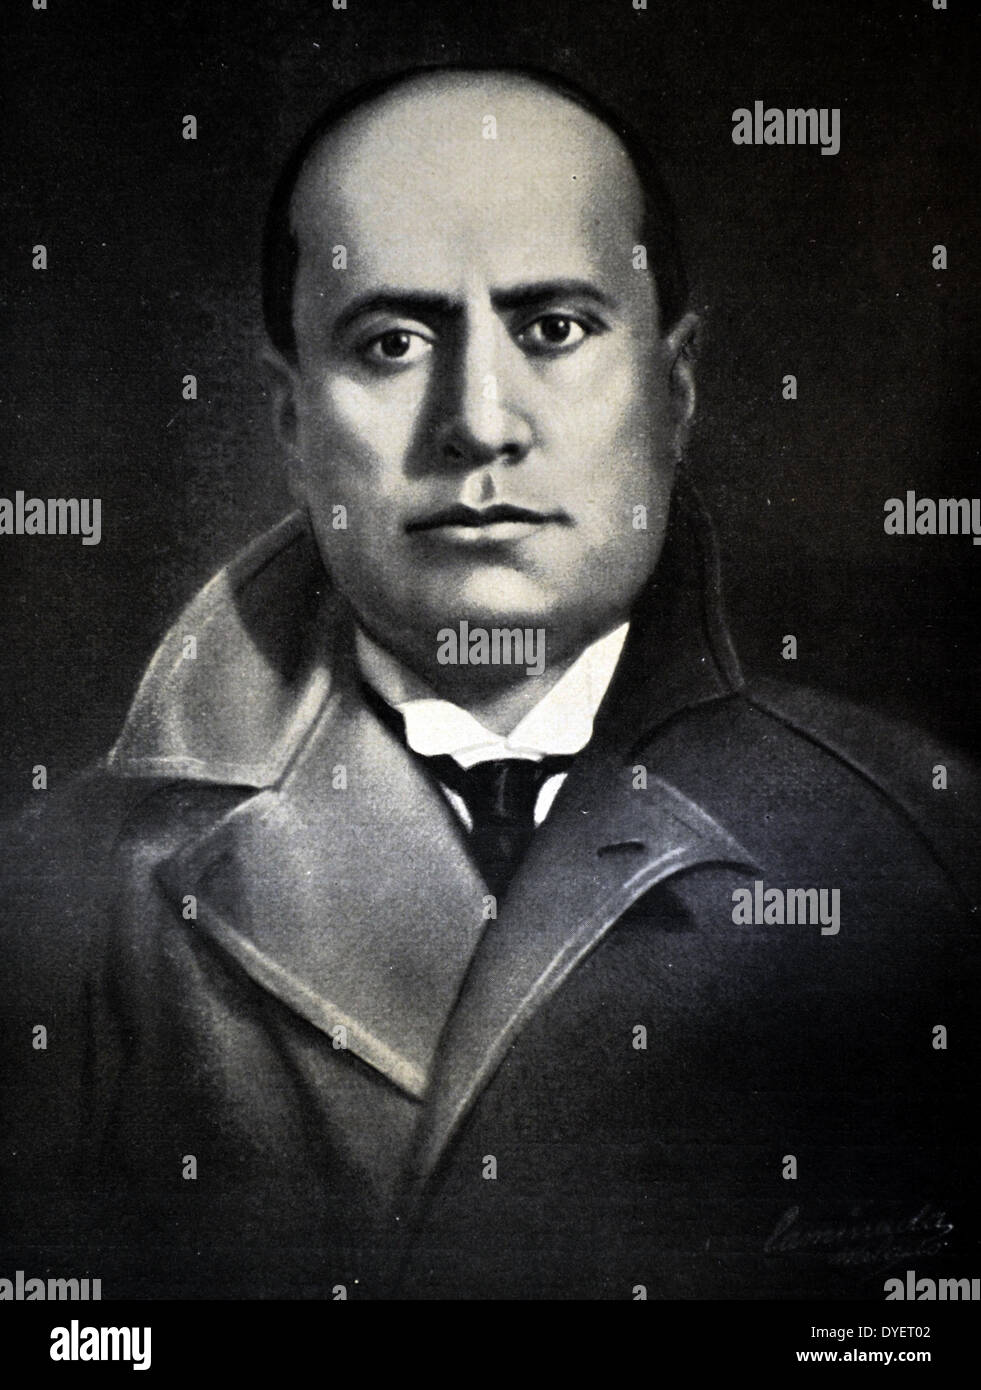 """a biography of benito mussolini the prime minister of italy during 1922 """"mussolini was deposed by a revolt within his own fascist grand council, and victor emmanuel iii, the king of italy, who had been reduced to a figurehead by mussolini, appointed marshal badoglio to be the new prime minister"""" (biography."""